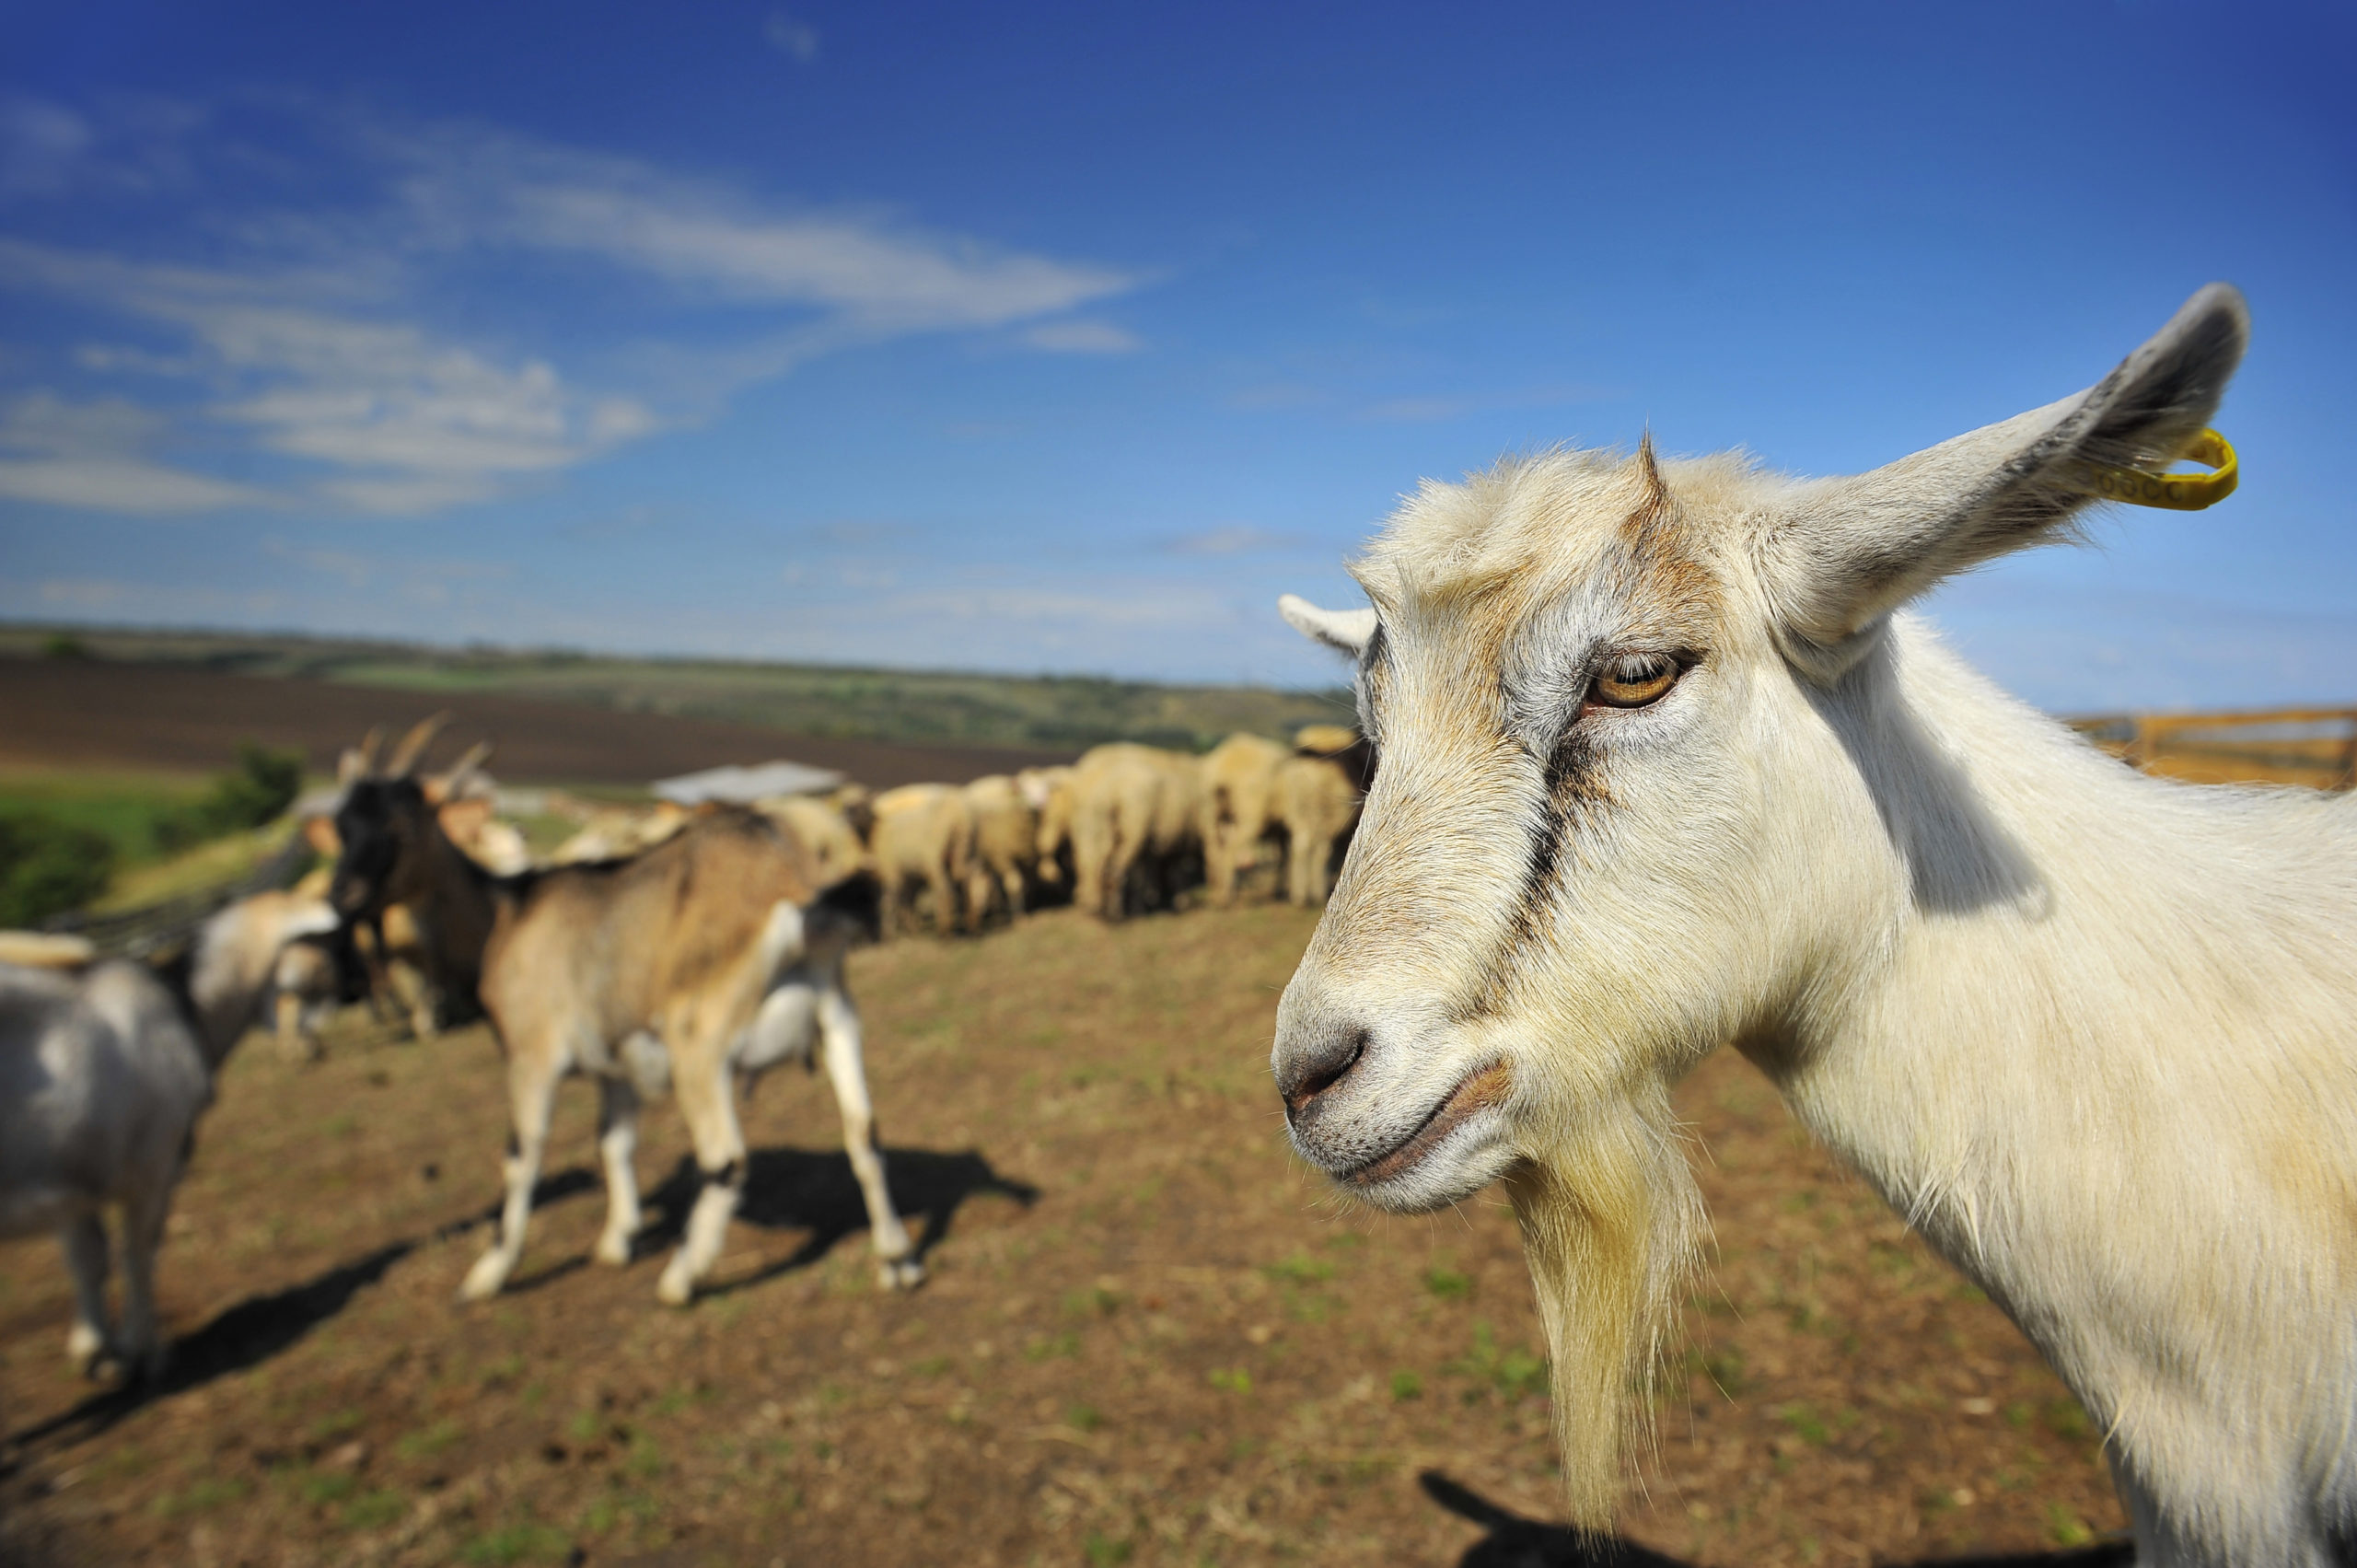 Everyday economics and missing annual agricultural census numbers on goats and other secondary animals and crops because of budget cutbacks, we have a mystery.